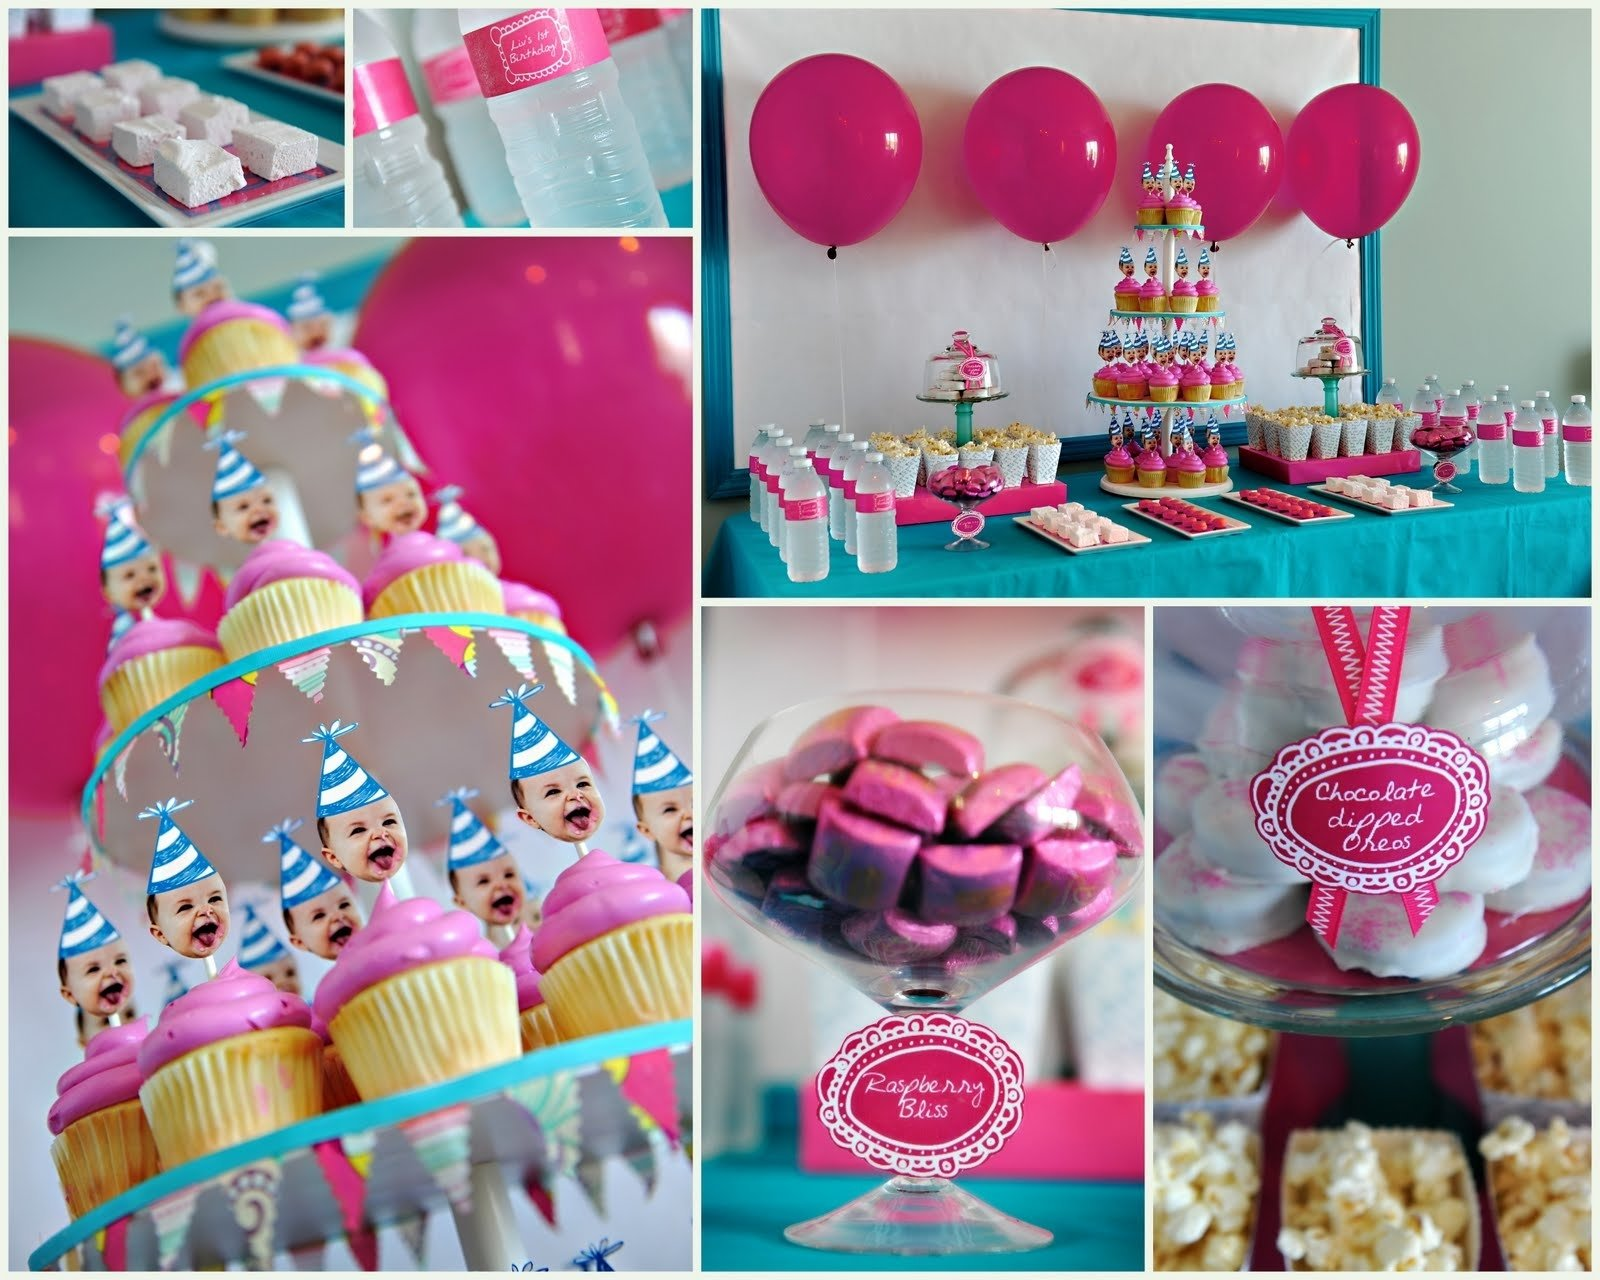 10 Perfect One Year Old Birthday Party Ideas birthday party ideas with balloon and cupcake lets party 22 2020